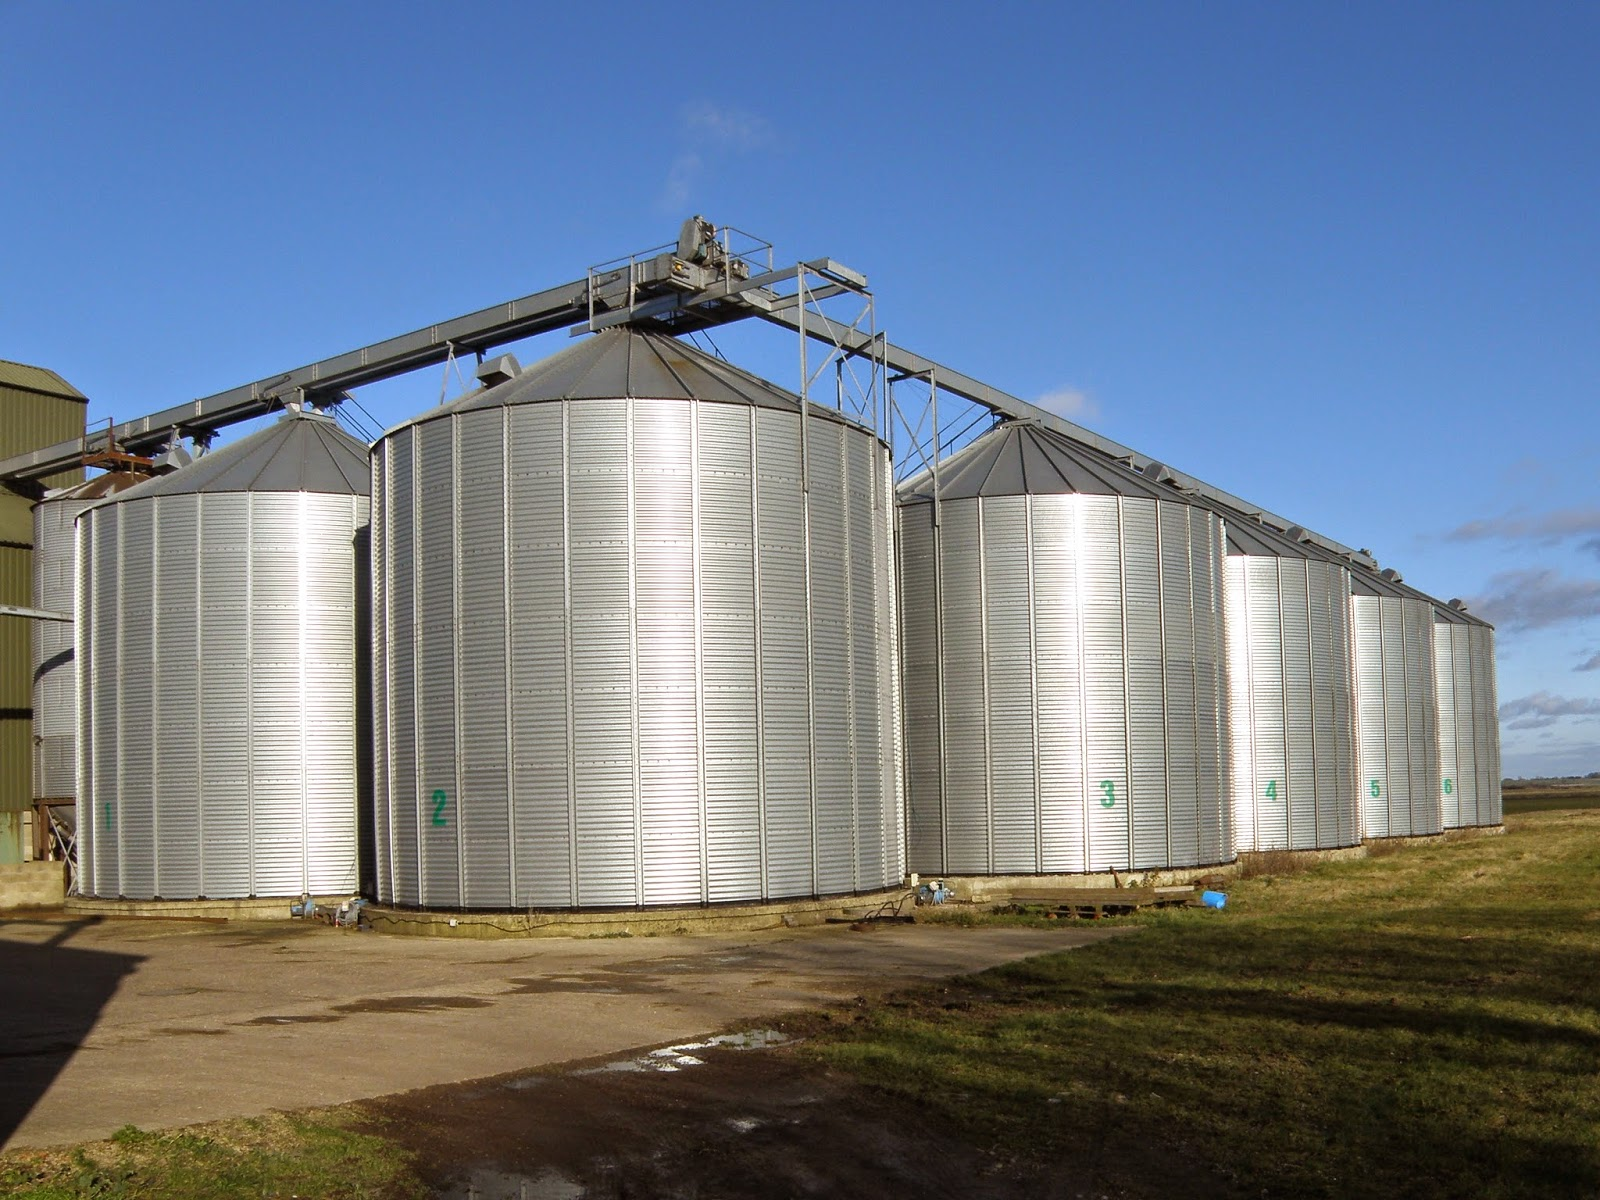 http://www.coventrytelegraph.net/news/local-news/man-rescued-from-grain-silo-8457423